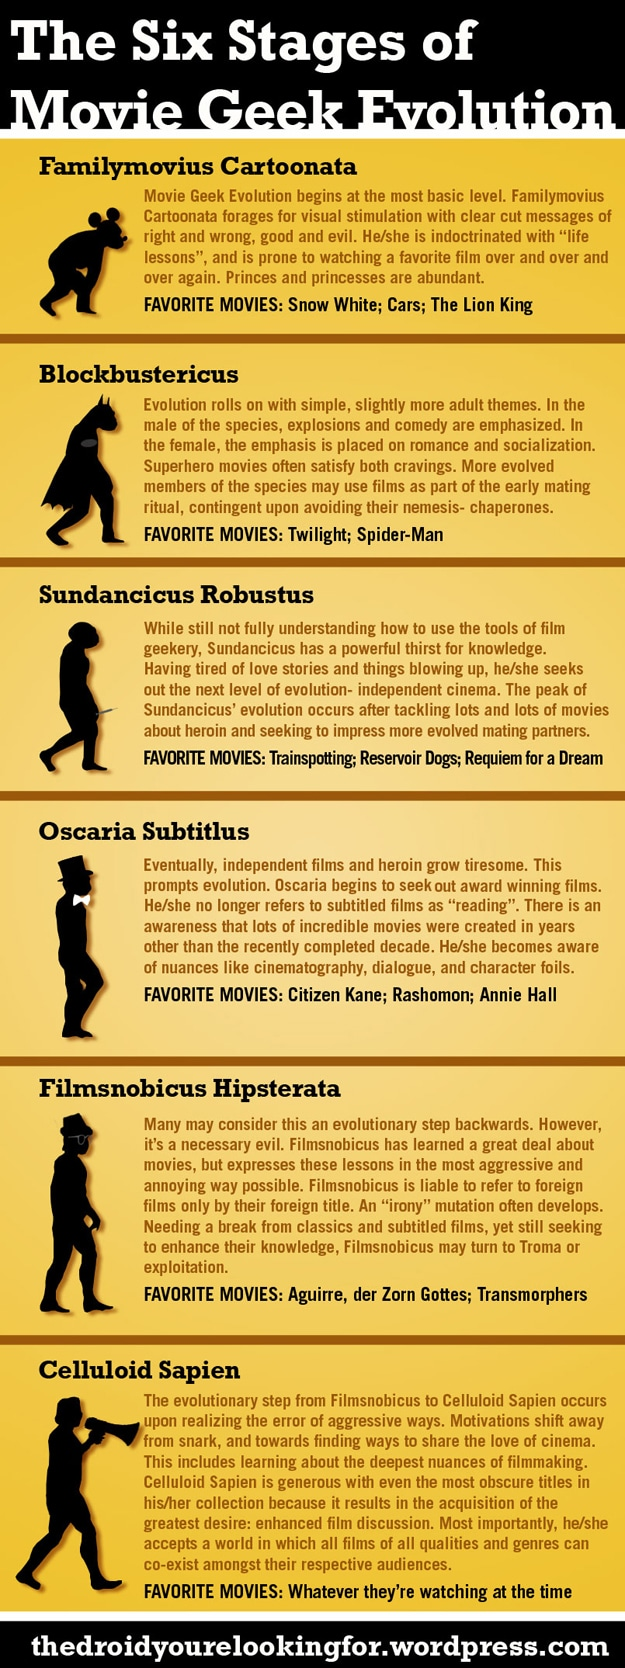 6 Stages Of Movie Geek Evolution